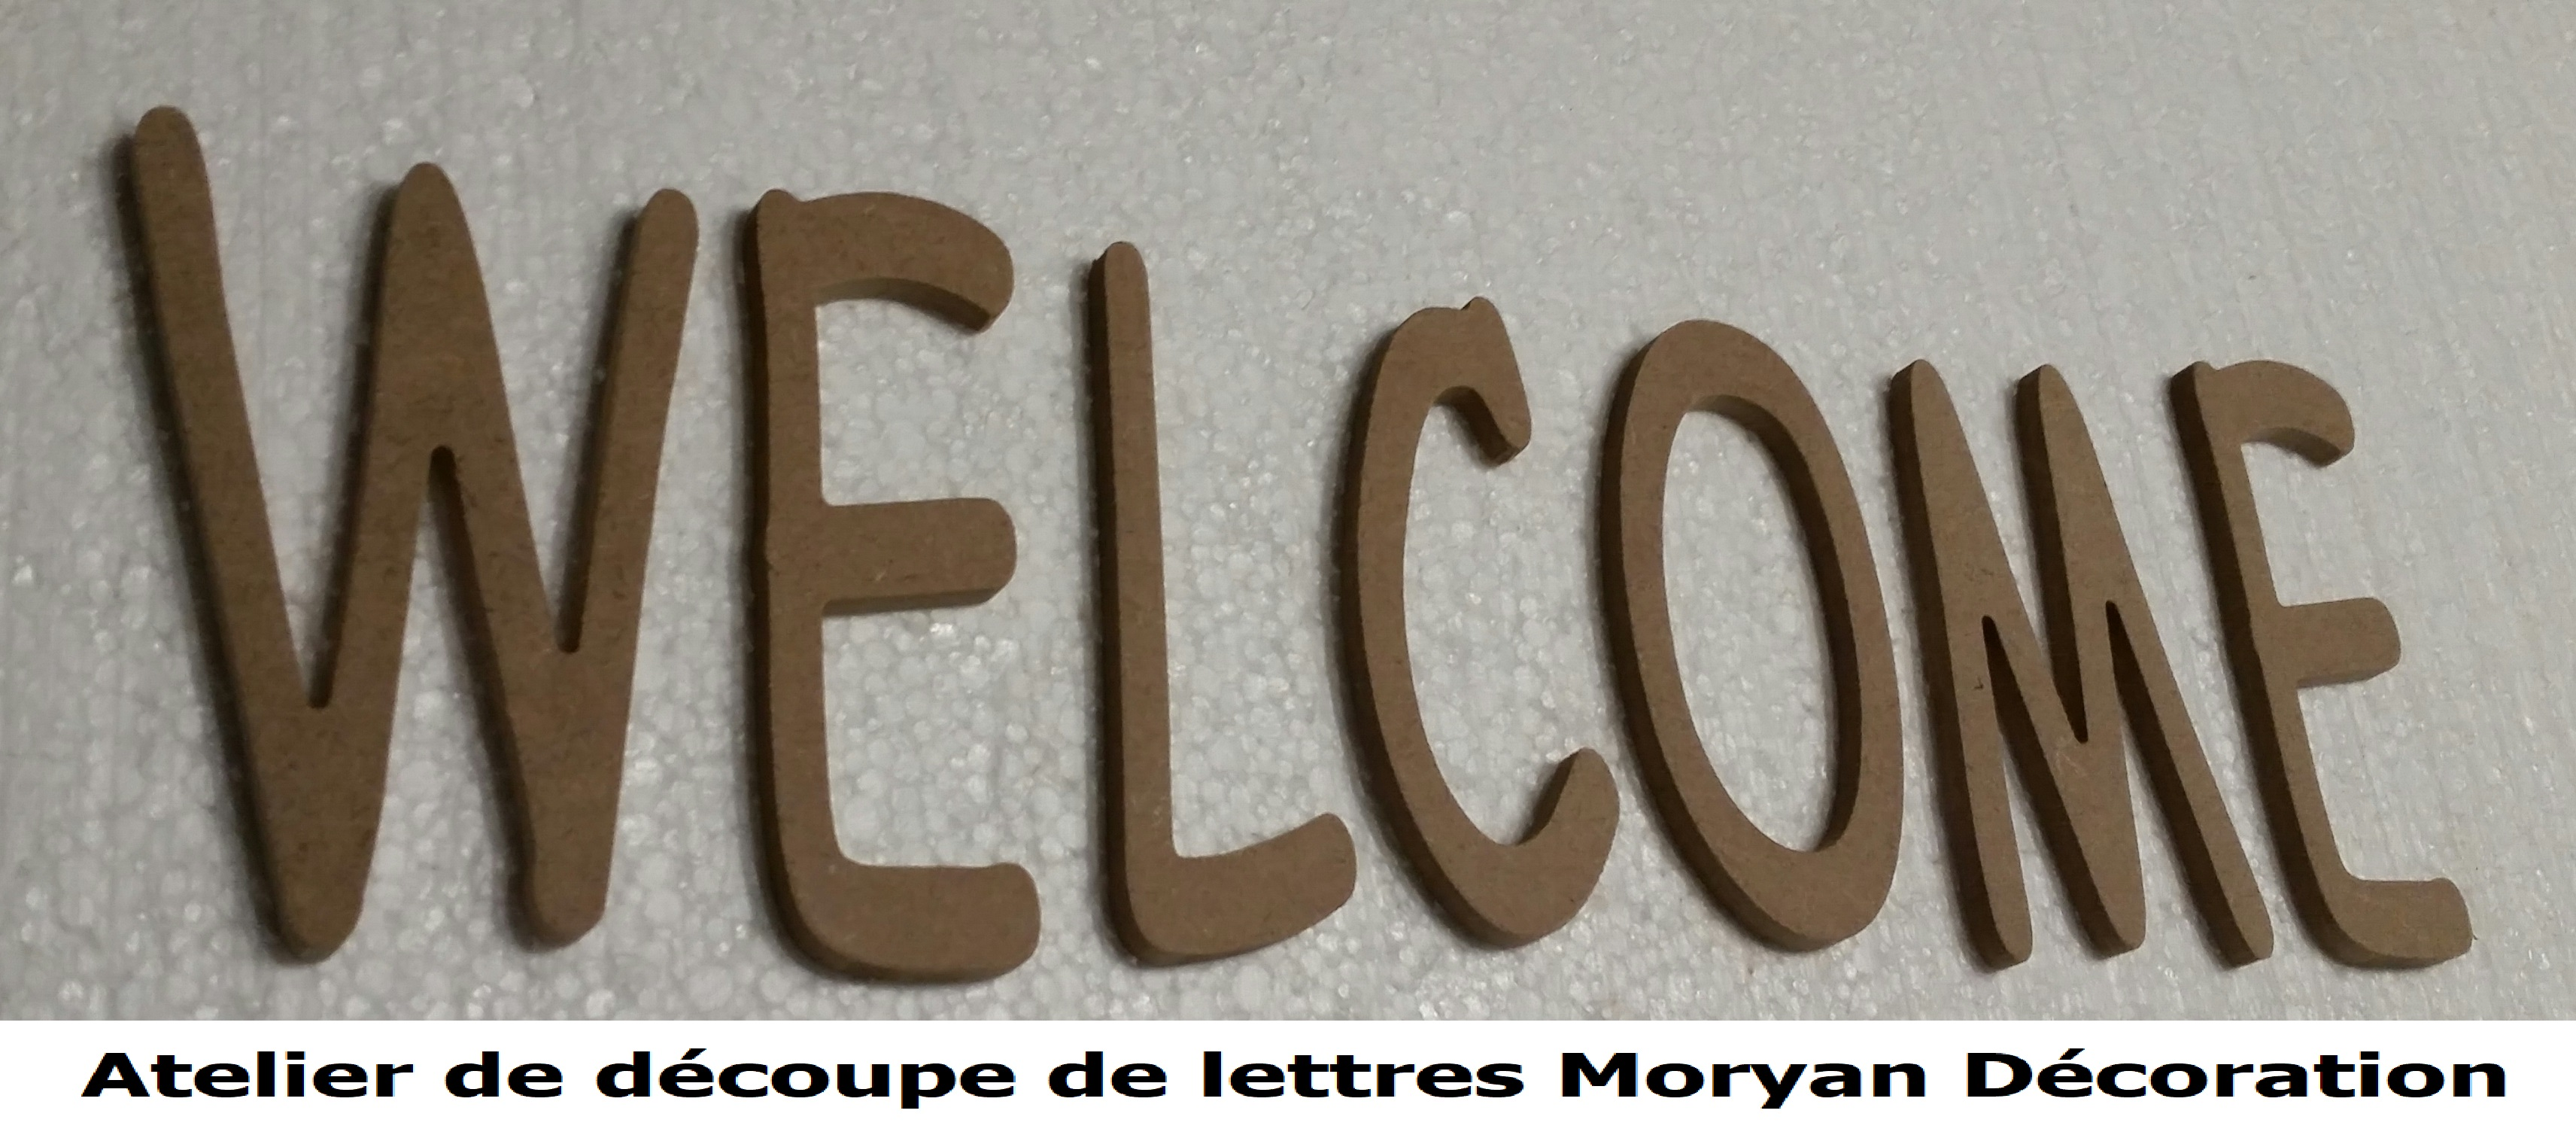 Lettre decorative WELCOME